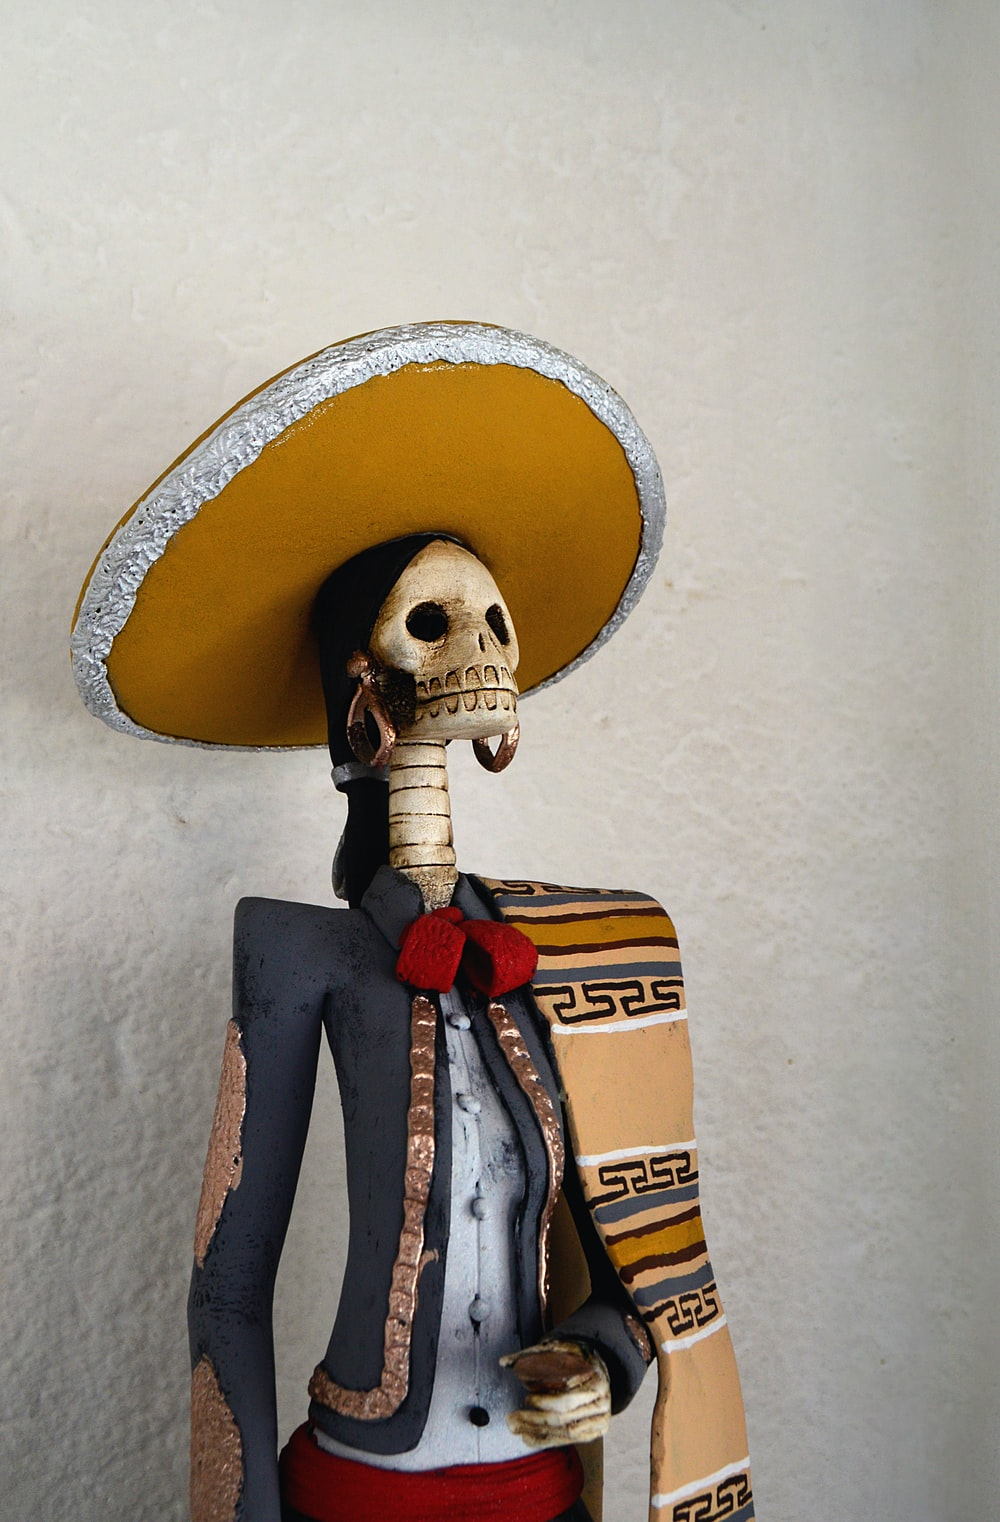 Day of the Dead statue near white painted wall